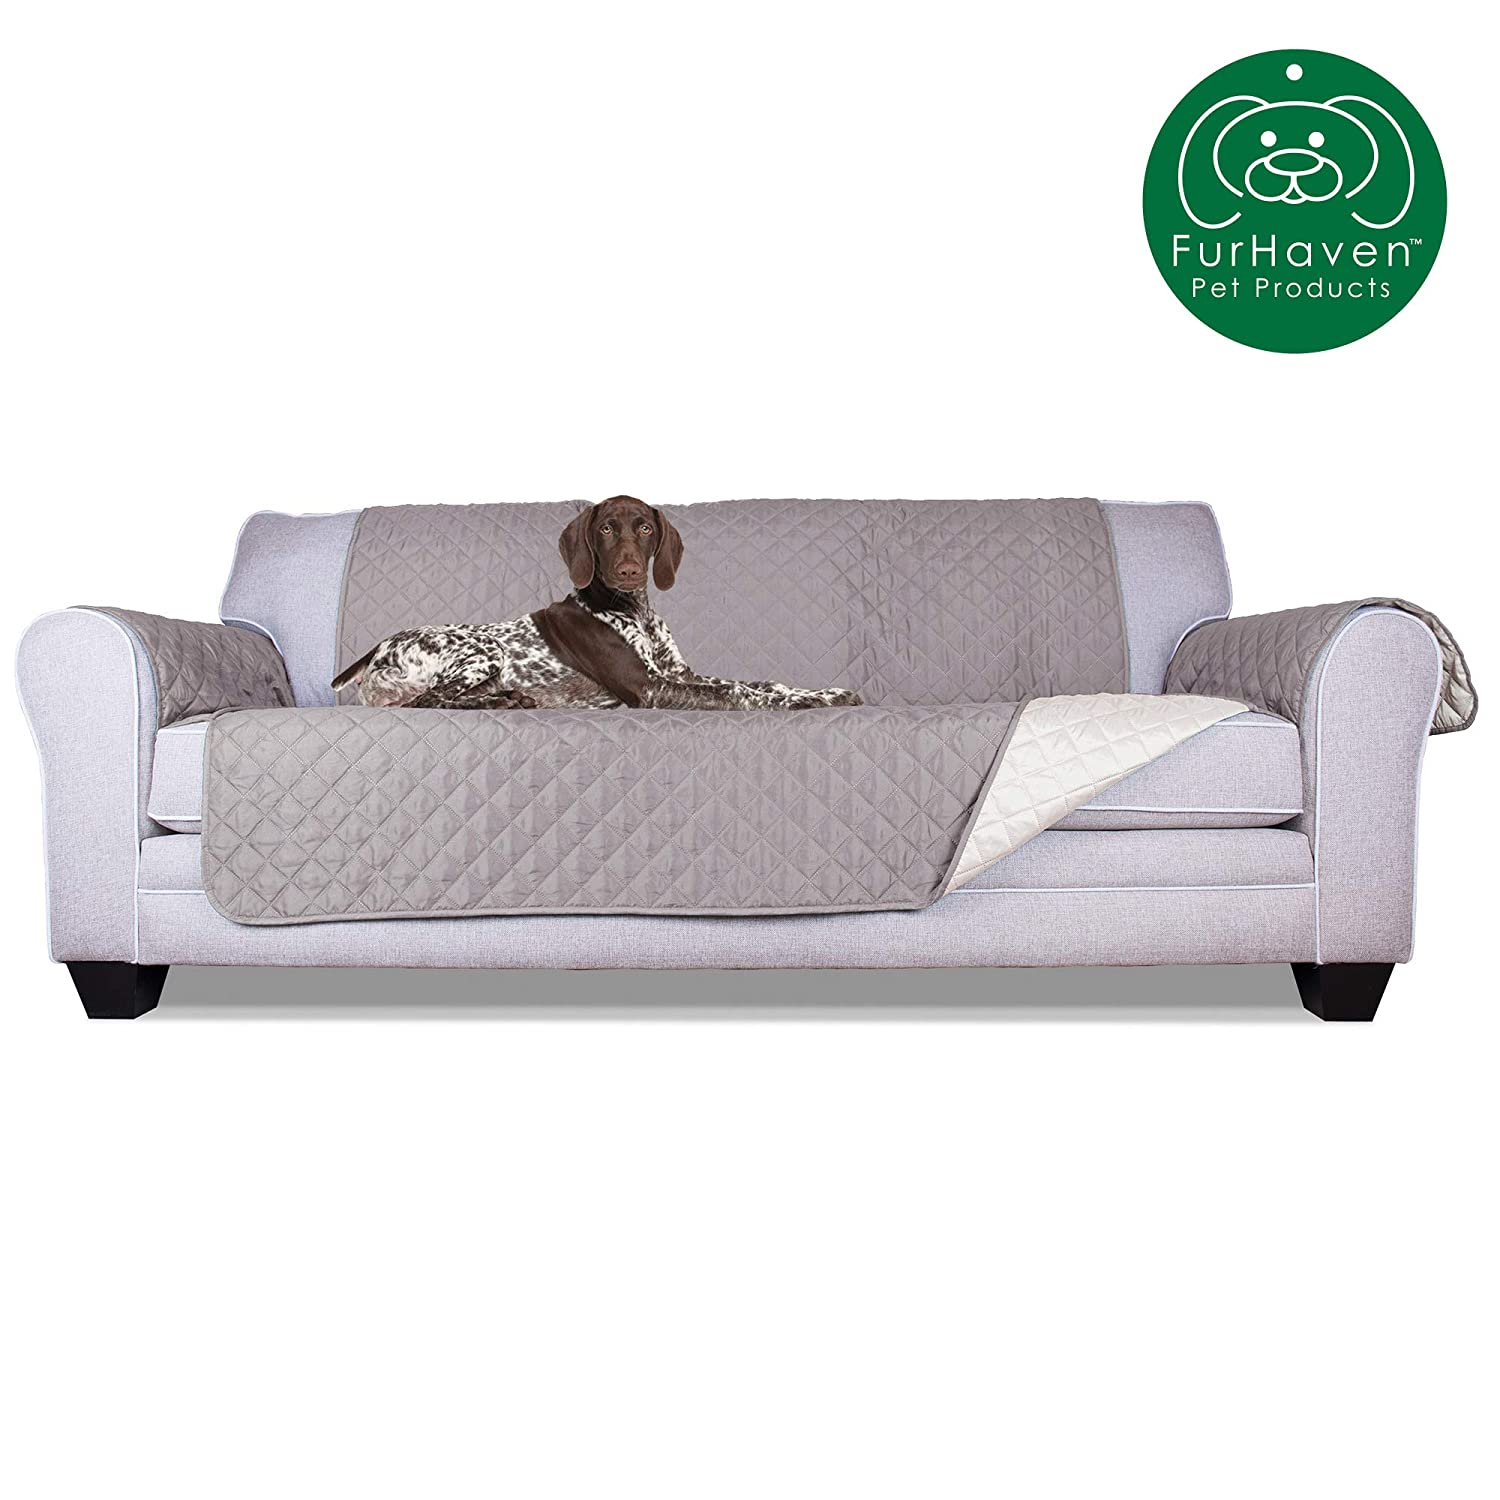 Marvelous Furhaven Pet Furniture Cover Two Tone Reversible Water Resistant Quilted Living Room Furniture Cover Protector Pet Bed For Dogs Cats Available Creativecarmelina Interior Chair Design Creativecarmelinacom